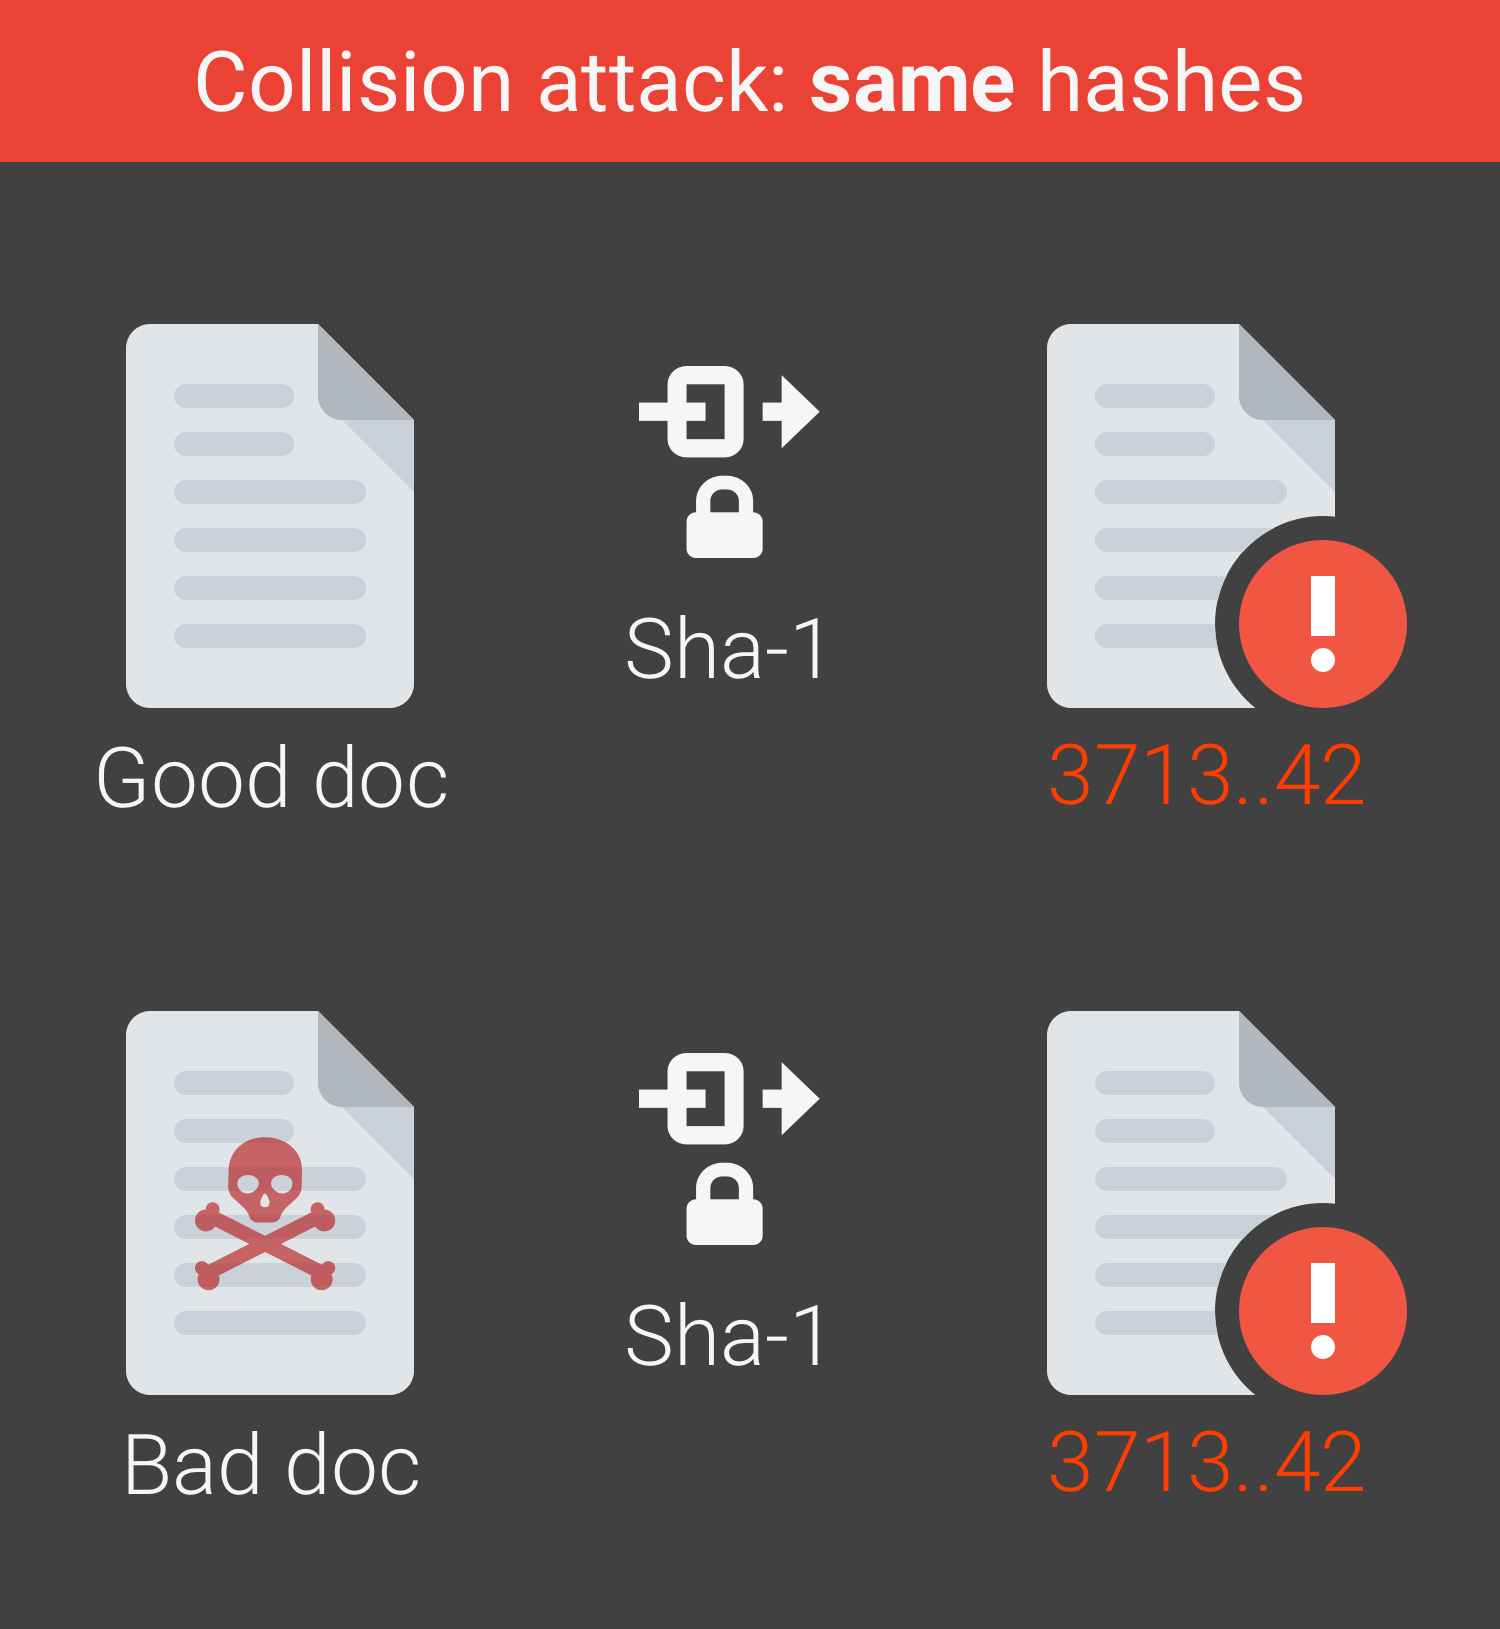 https://shattered.io/static/infographic-small.png